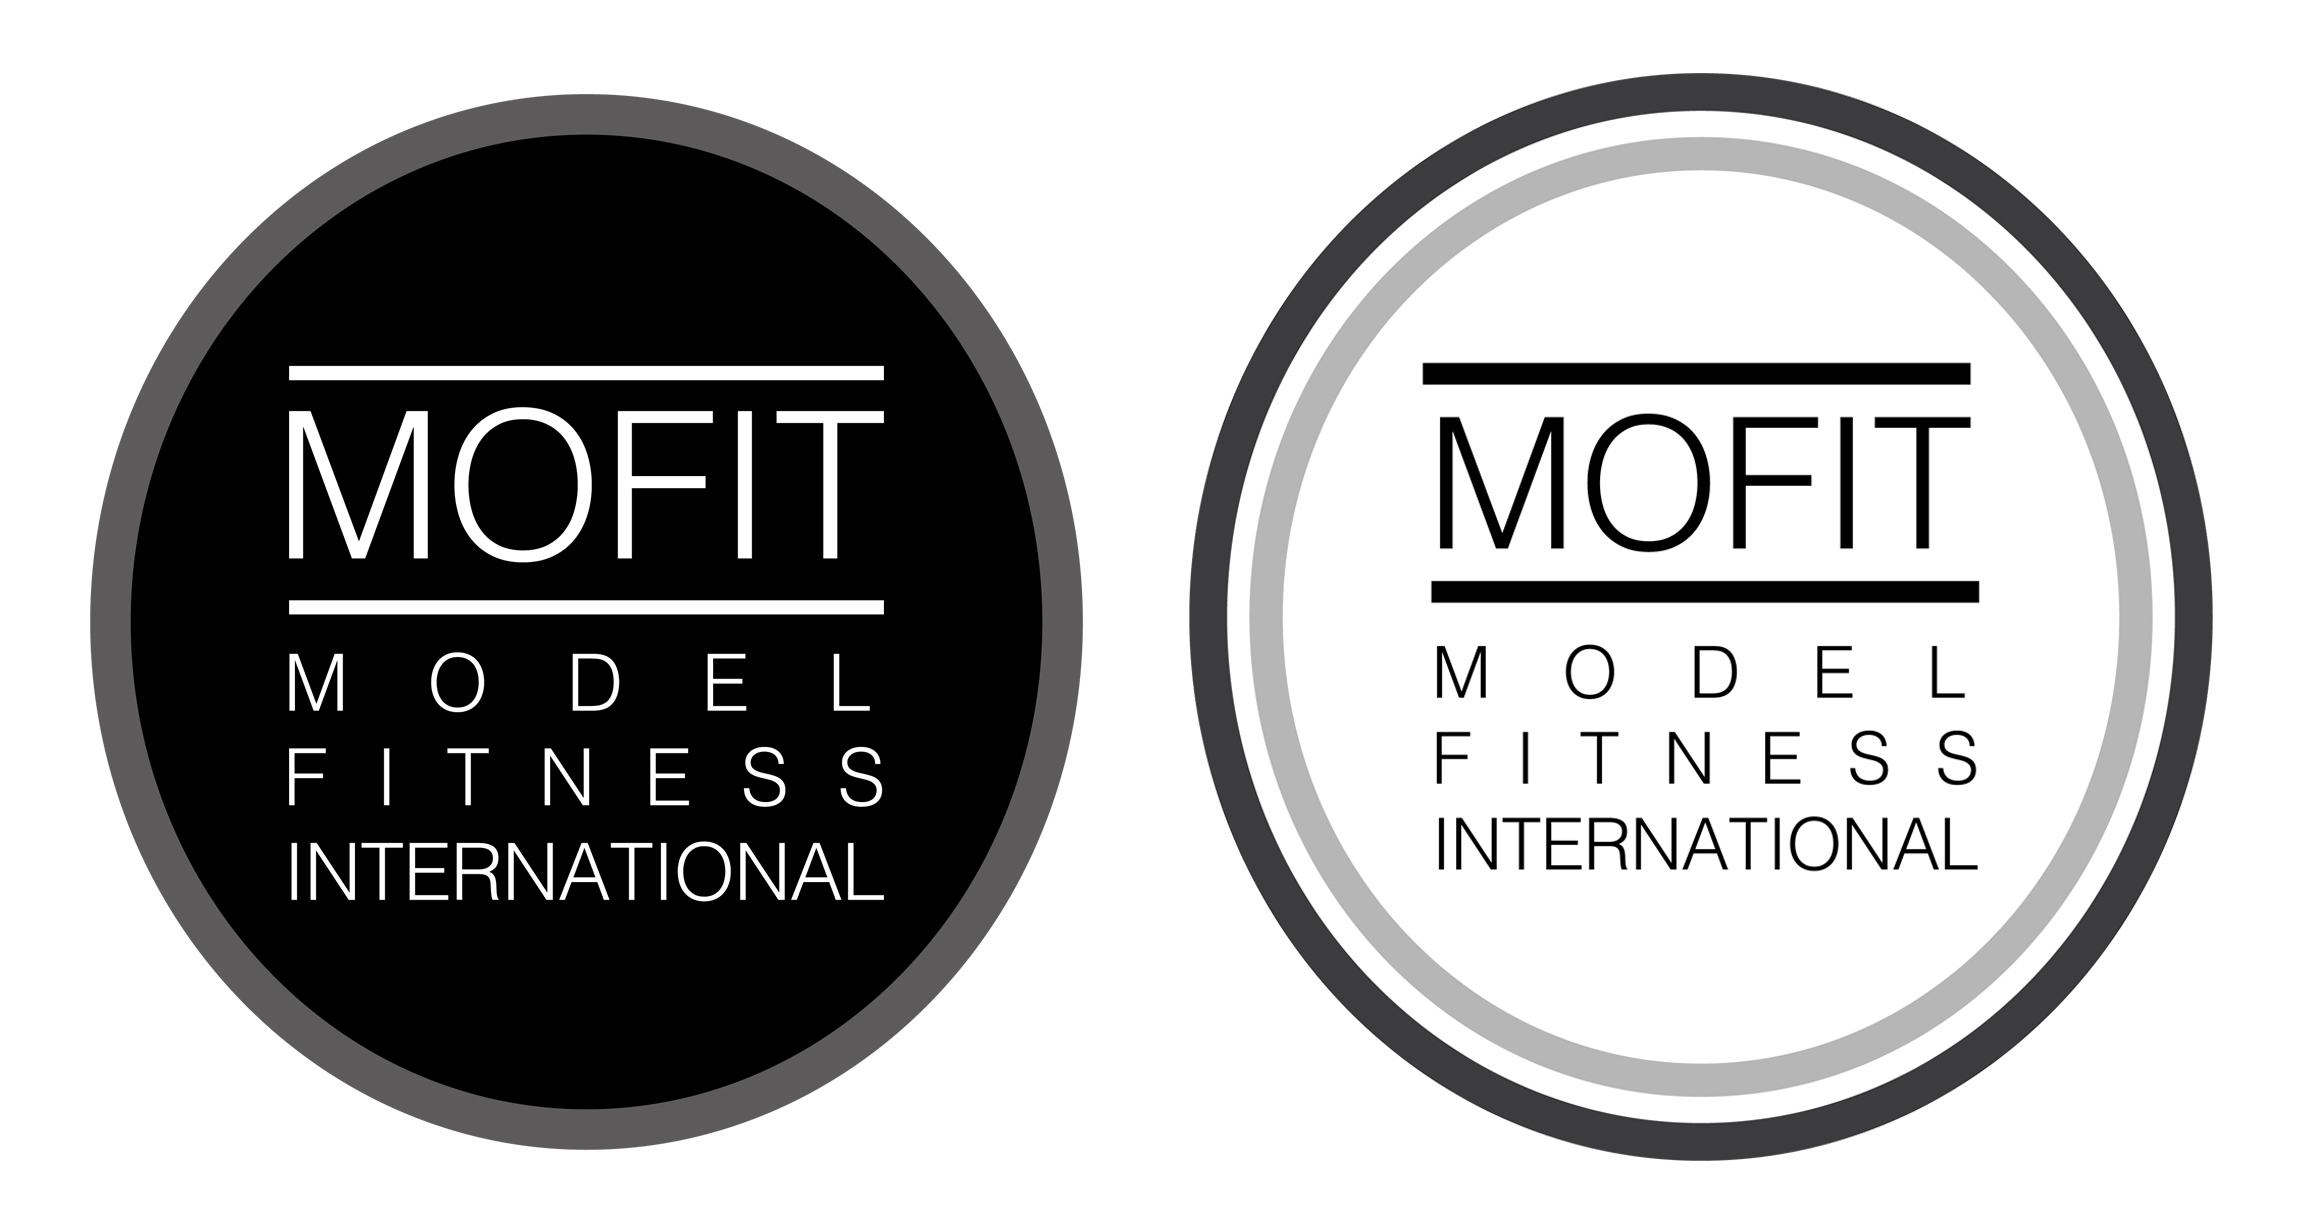 logo mofit model fitness international agency